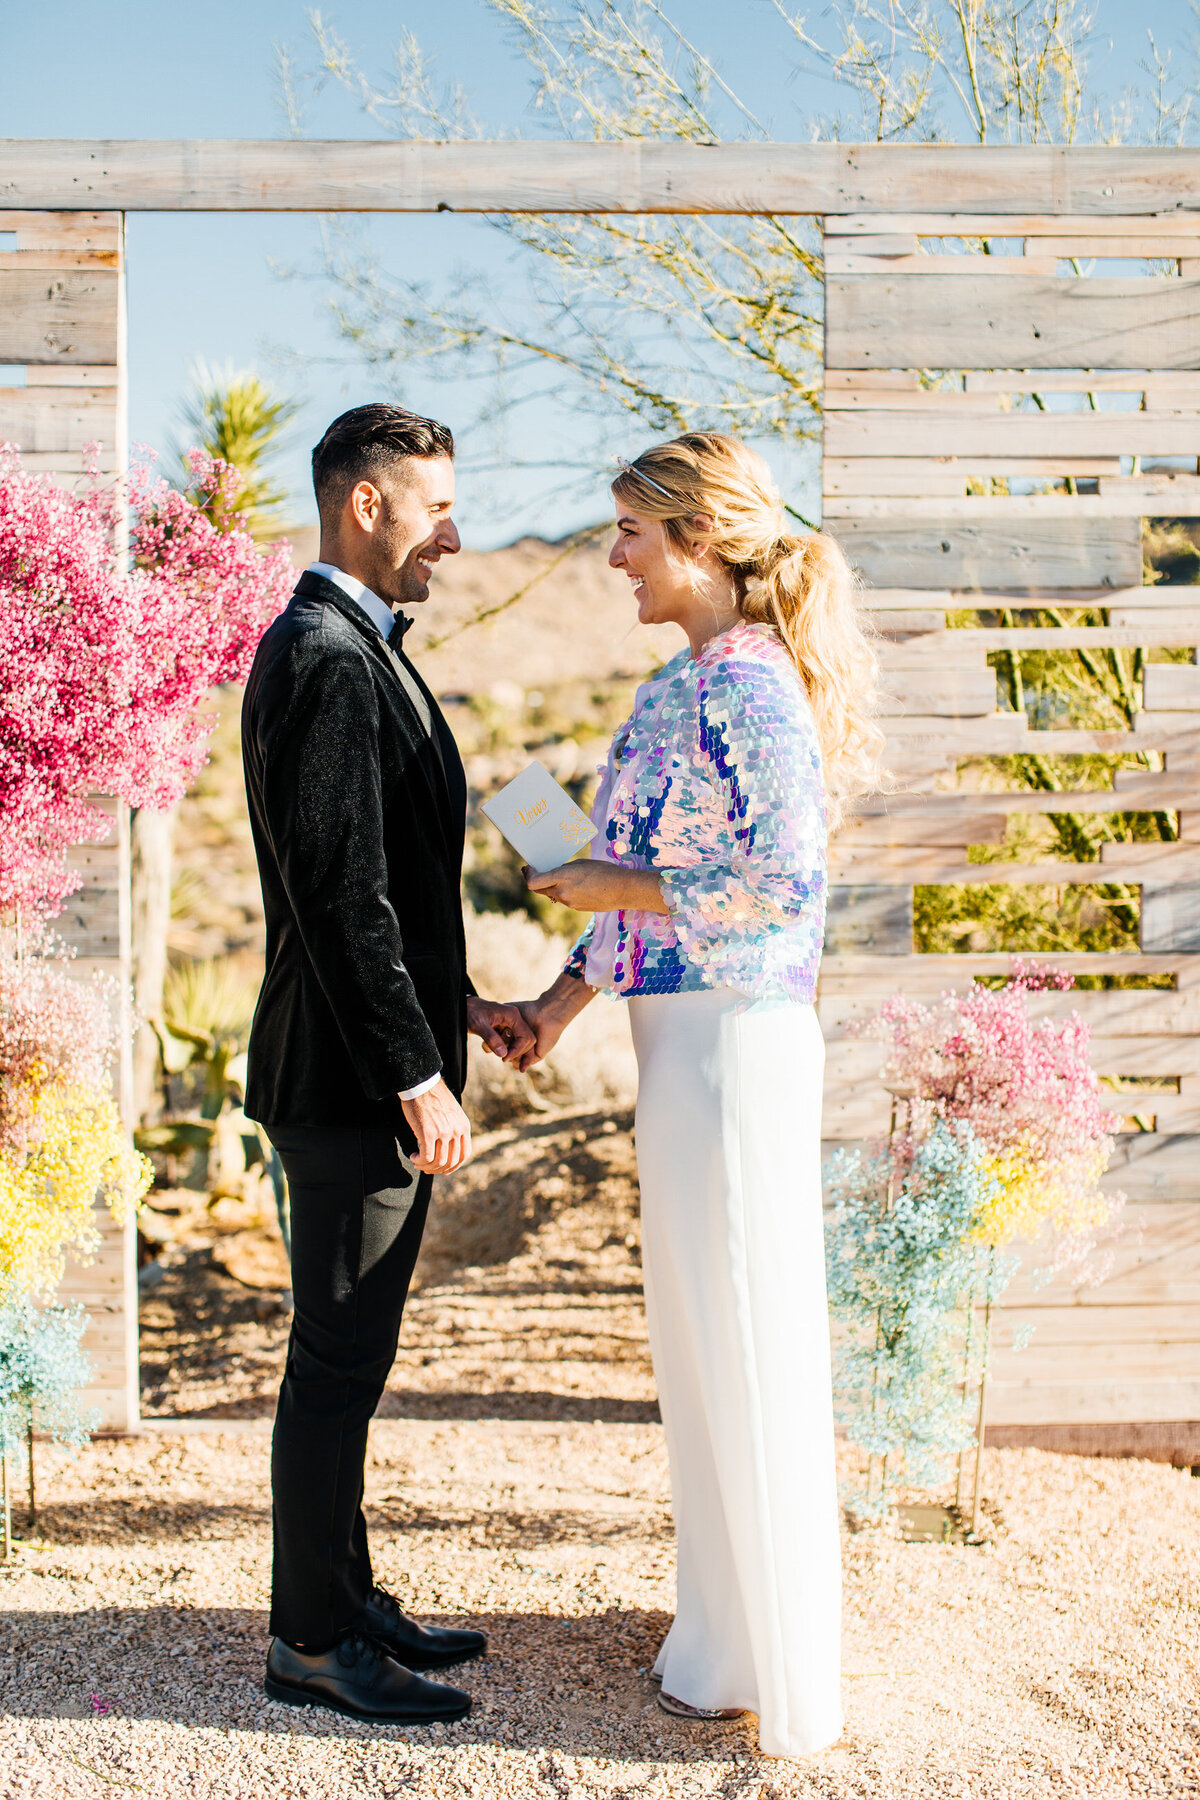 colorful-joshua-tree-elopement-inspiration-joshua-tree-wedding-photographer-palm-springs-wedding-photographer-erin-marton-photography-17